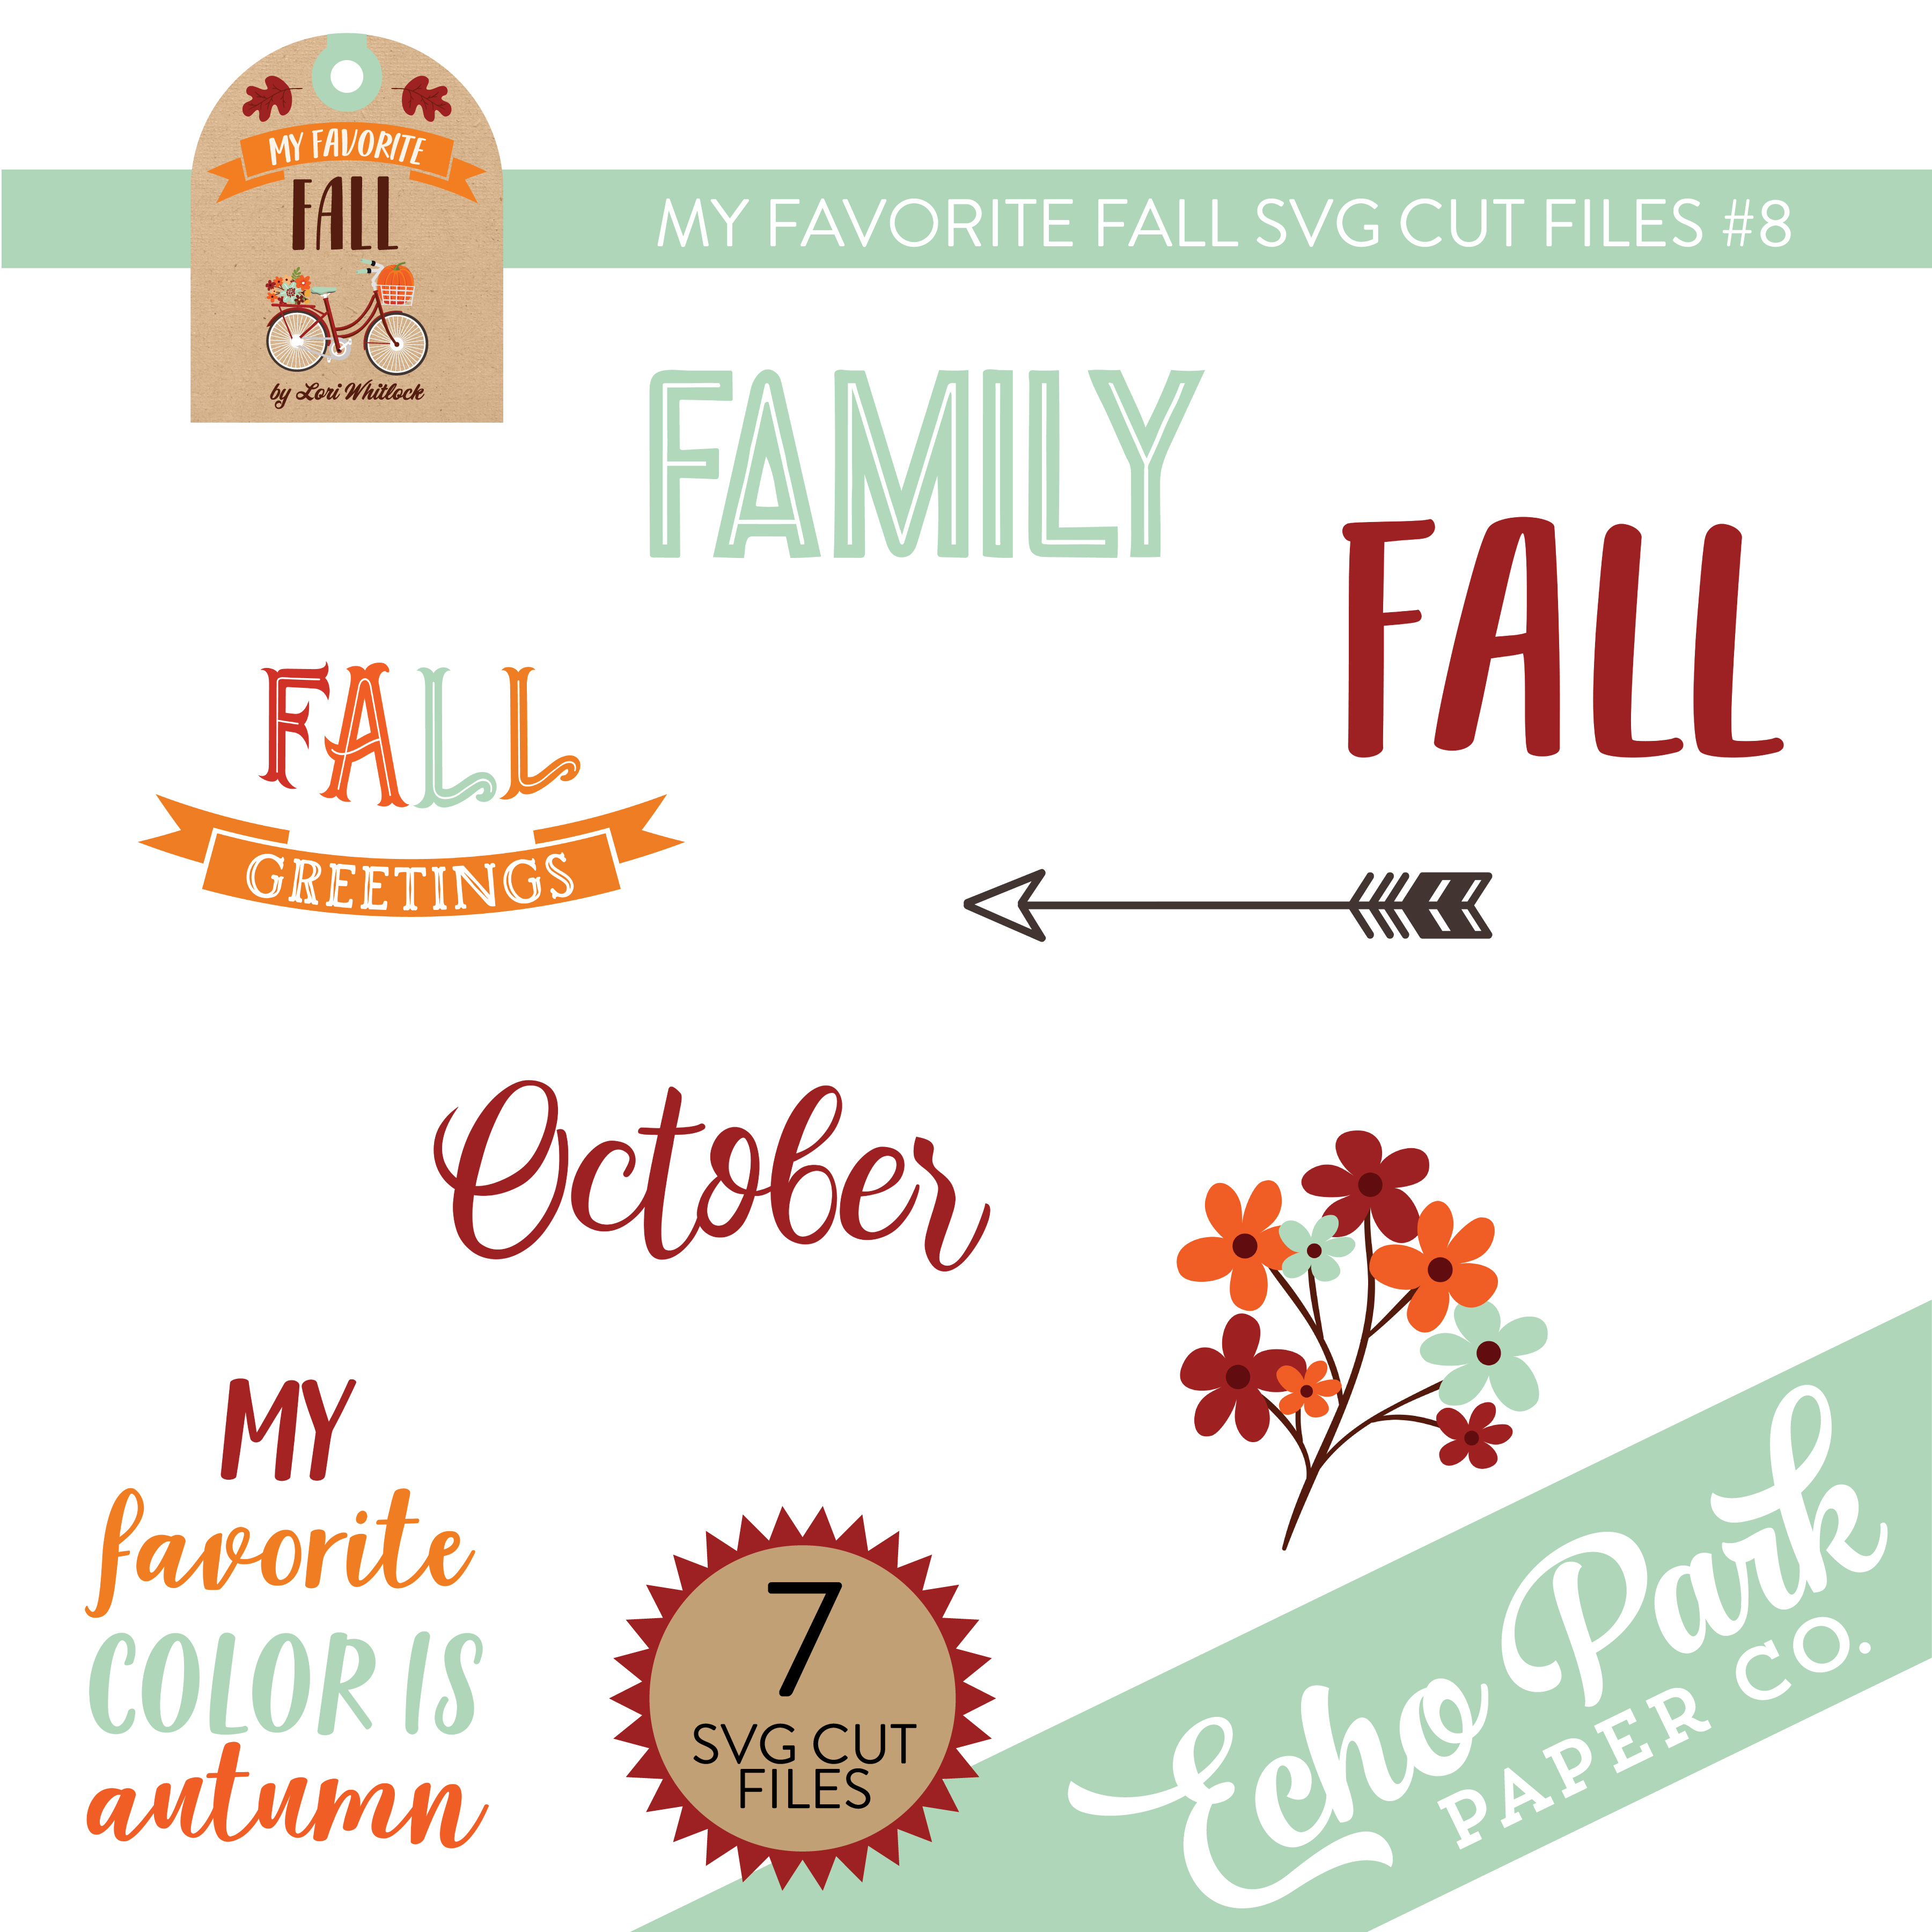 My Favorite Fall Svg Cut Files 8 Snap Click Supply Co